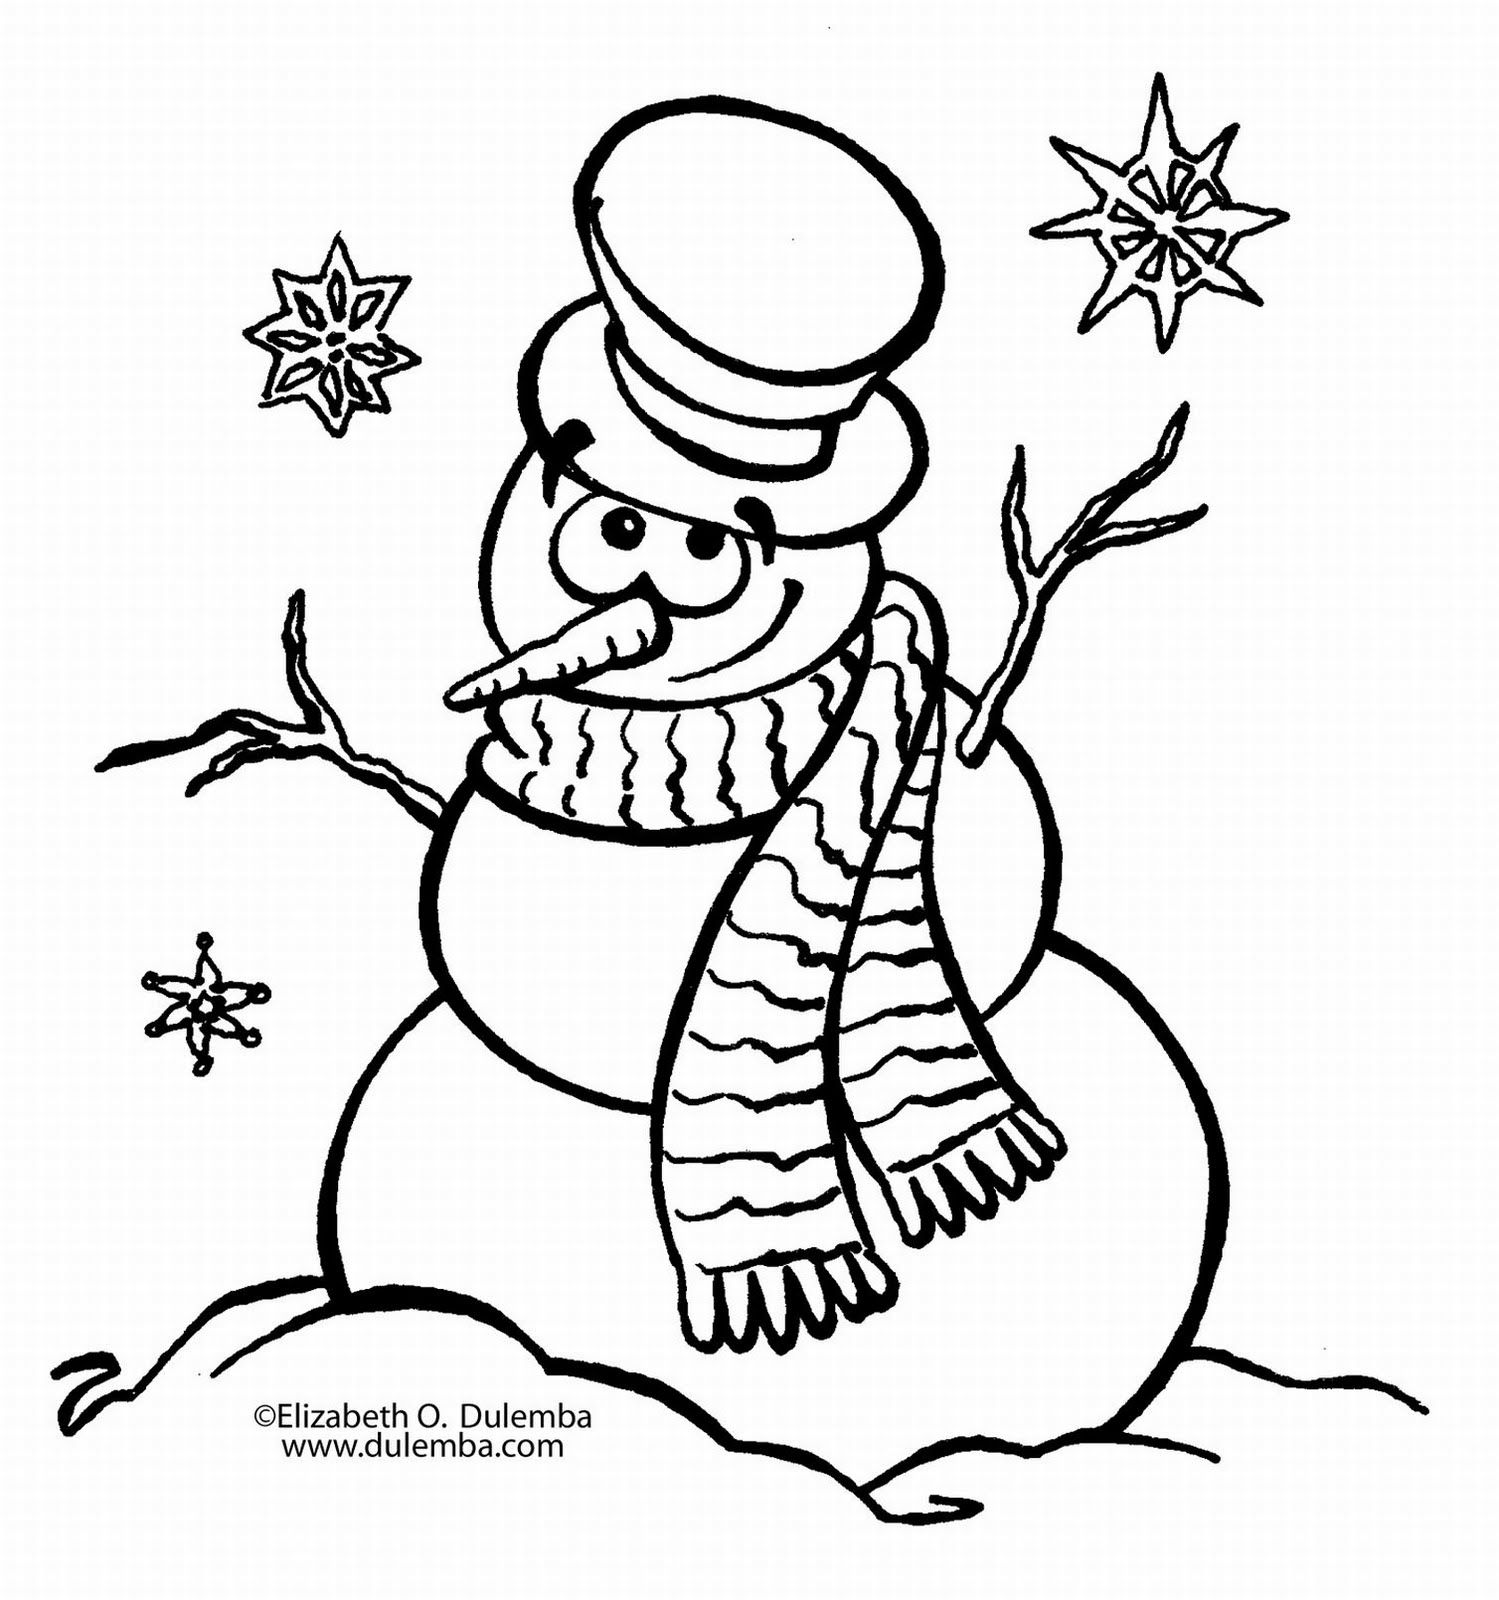 Blank Coloring Pages To Print With Images Snowman Coloring